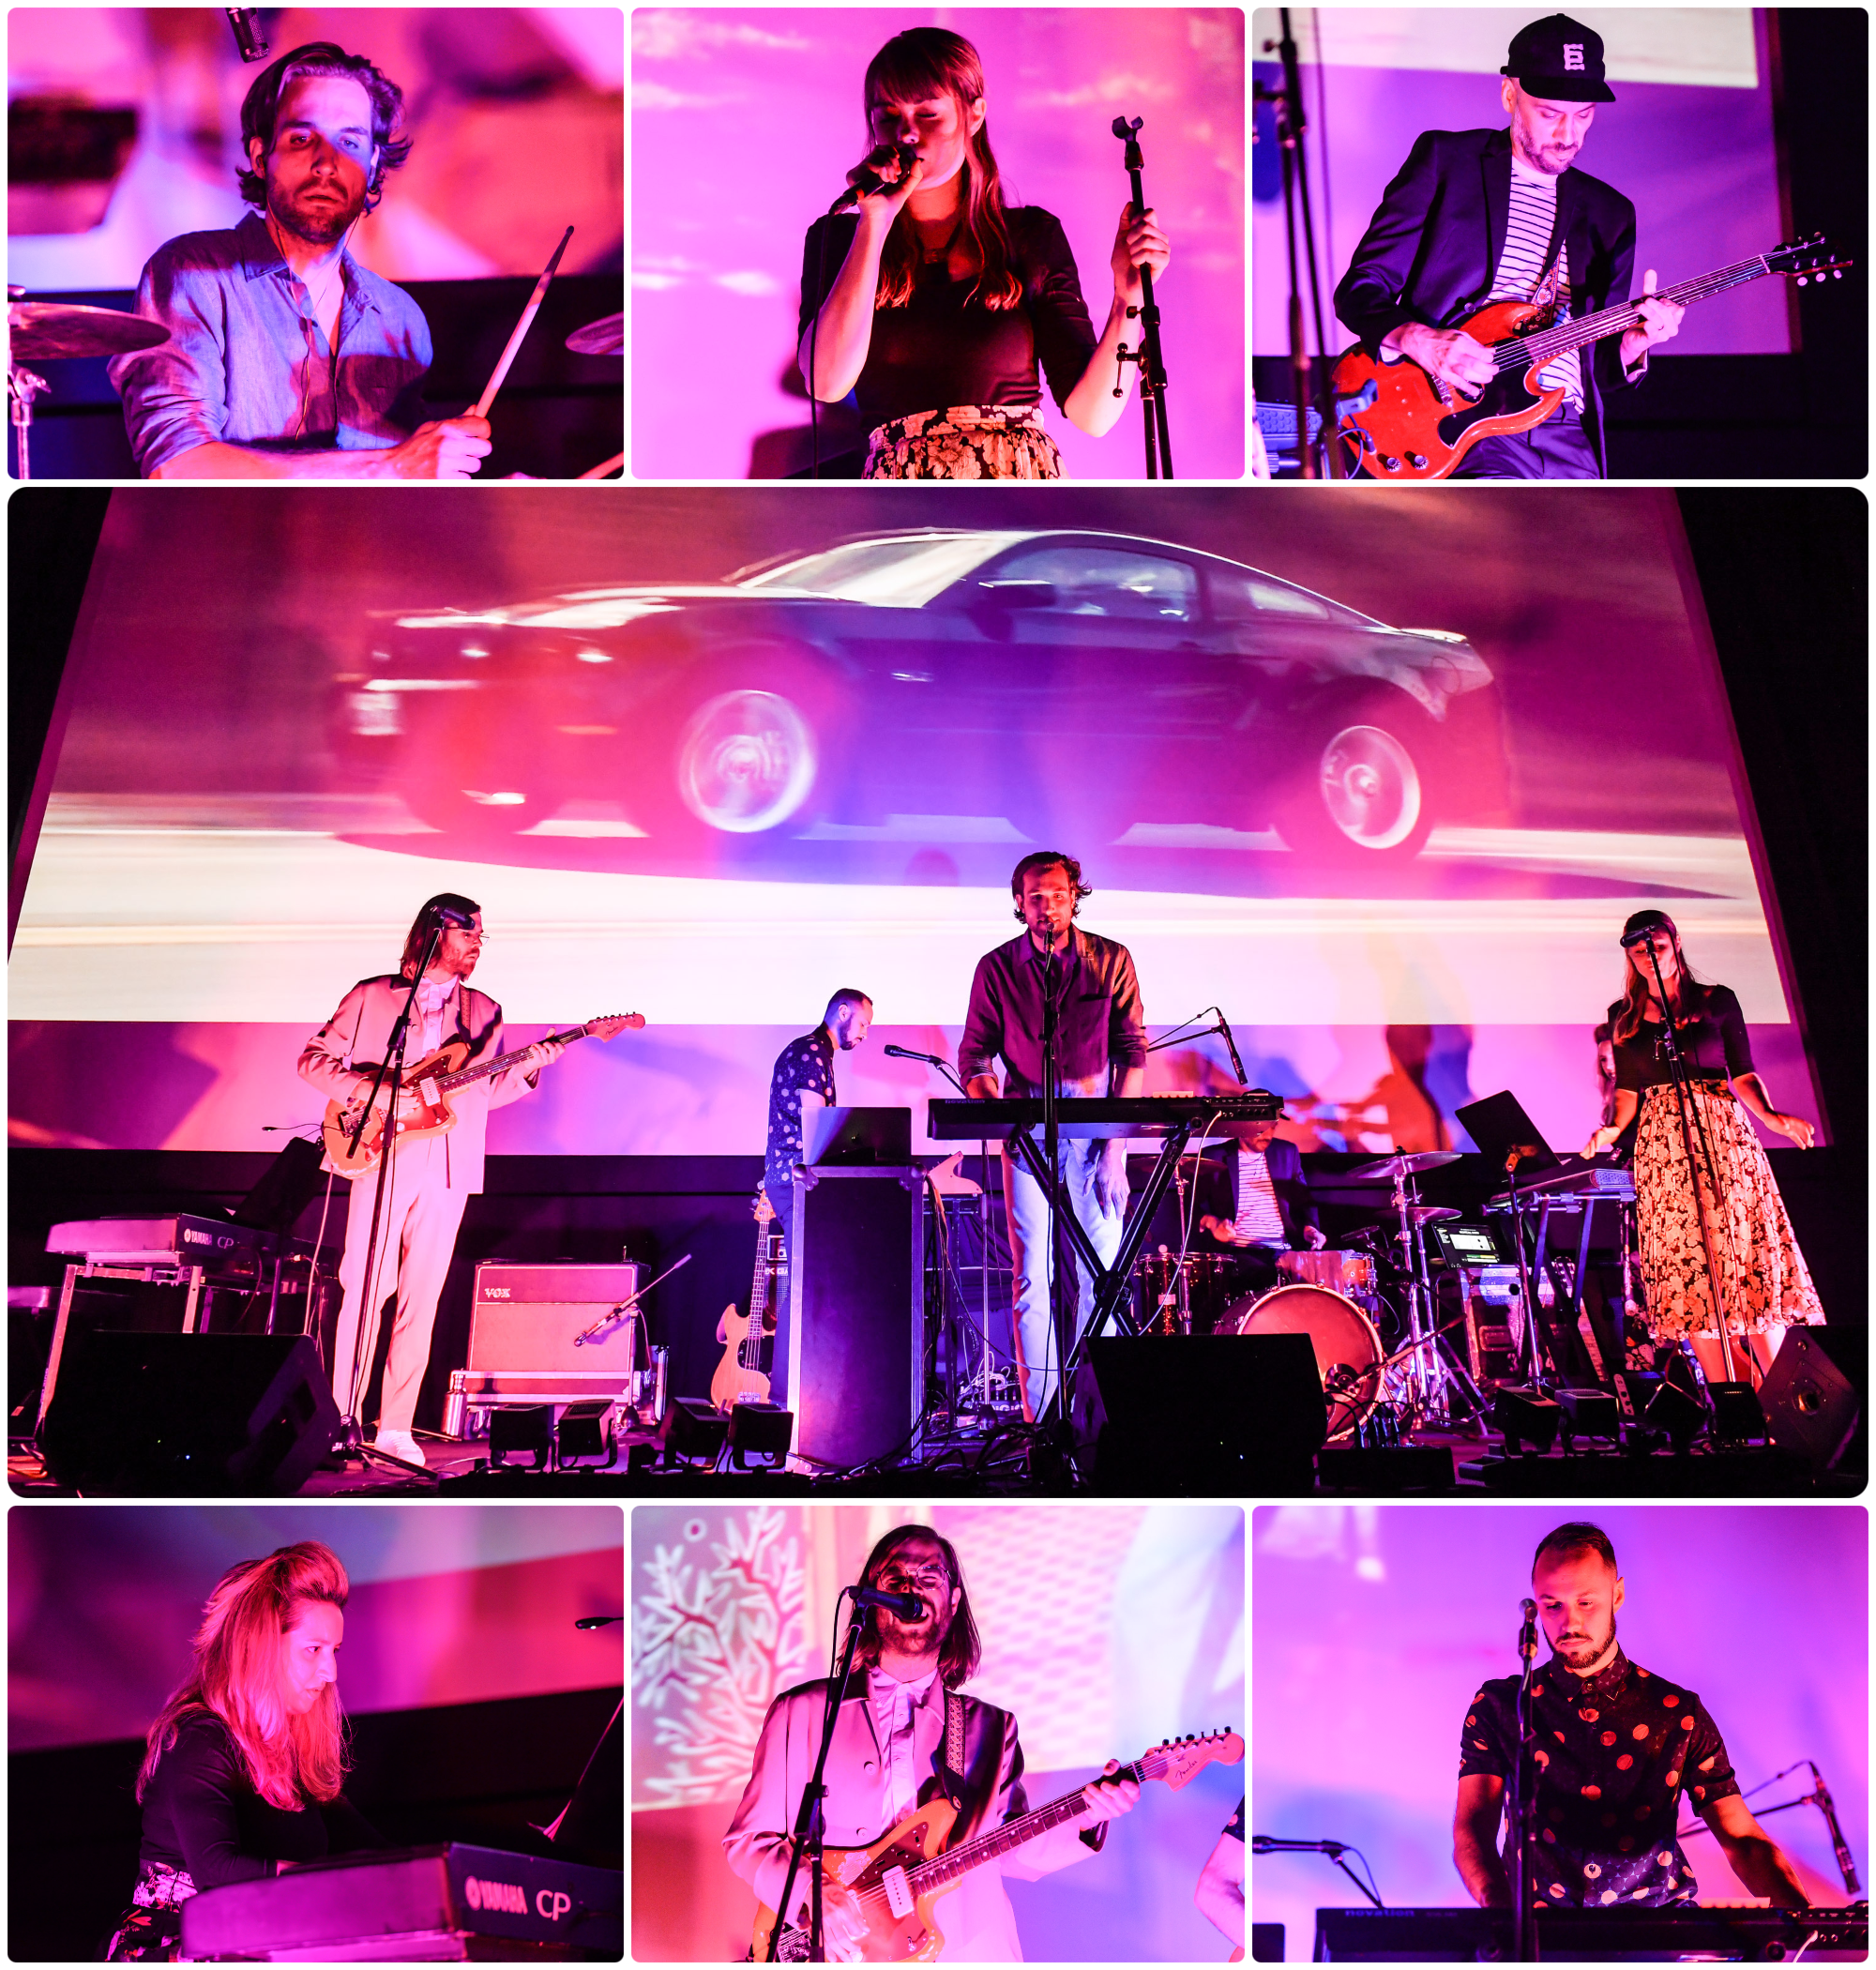 Three rows of photos in a gallery: top row is three close-ups of musicians performing; middle photo is long shot of a group of musicians onstage; bottom three areclose-ups of individual performers. All photos have a pink background because the lighting.